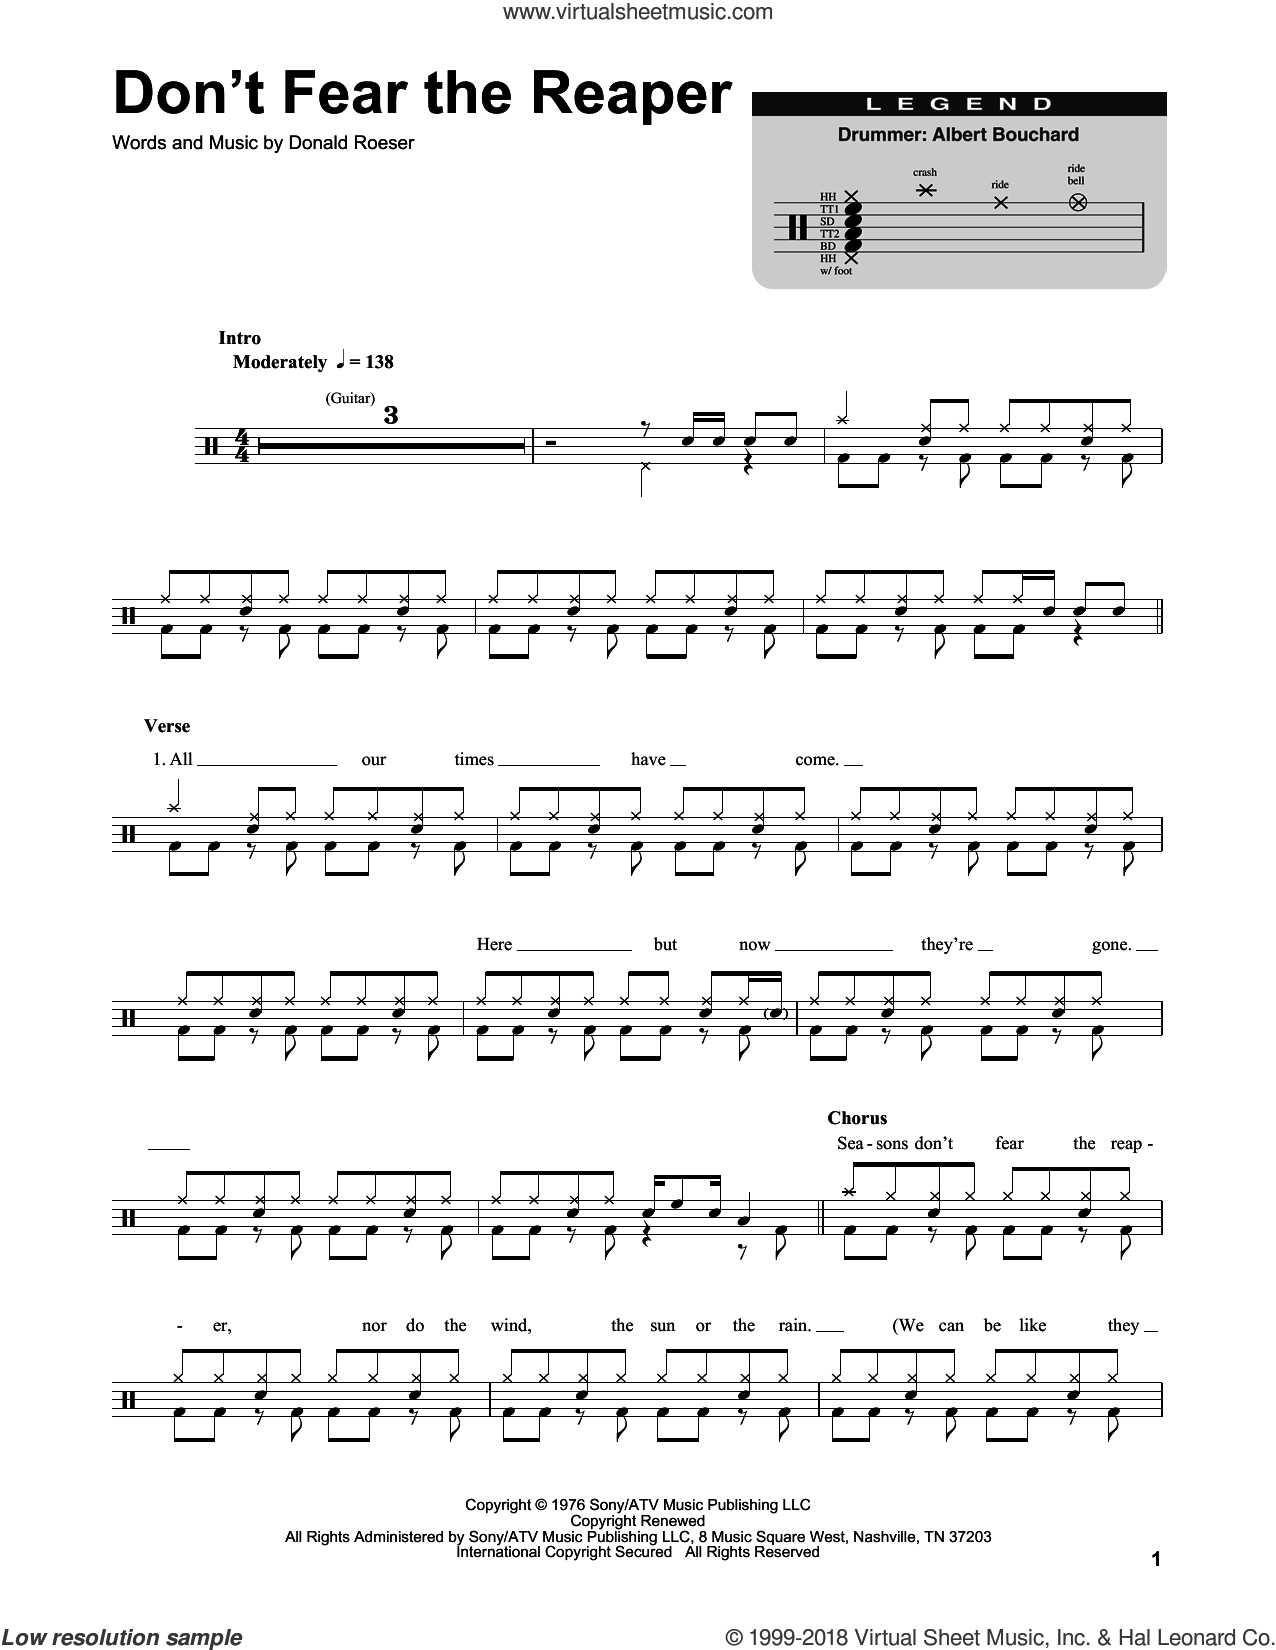 Don't Fear The Reaper sheet music for drums by Blue Oyster Cult and Donald Roeser, intermediate skill level